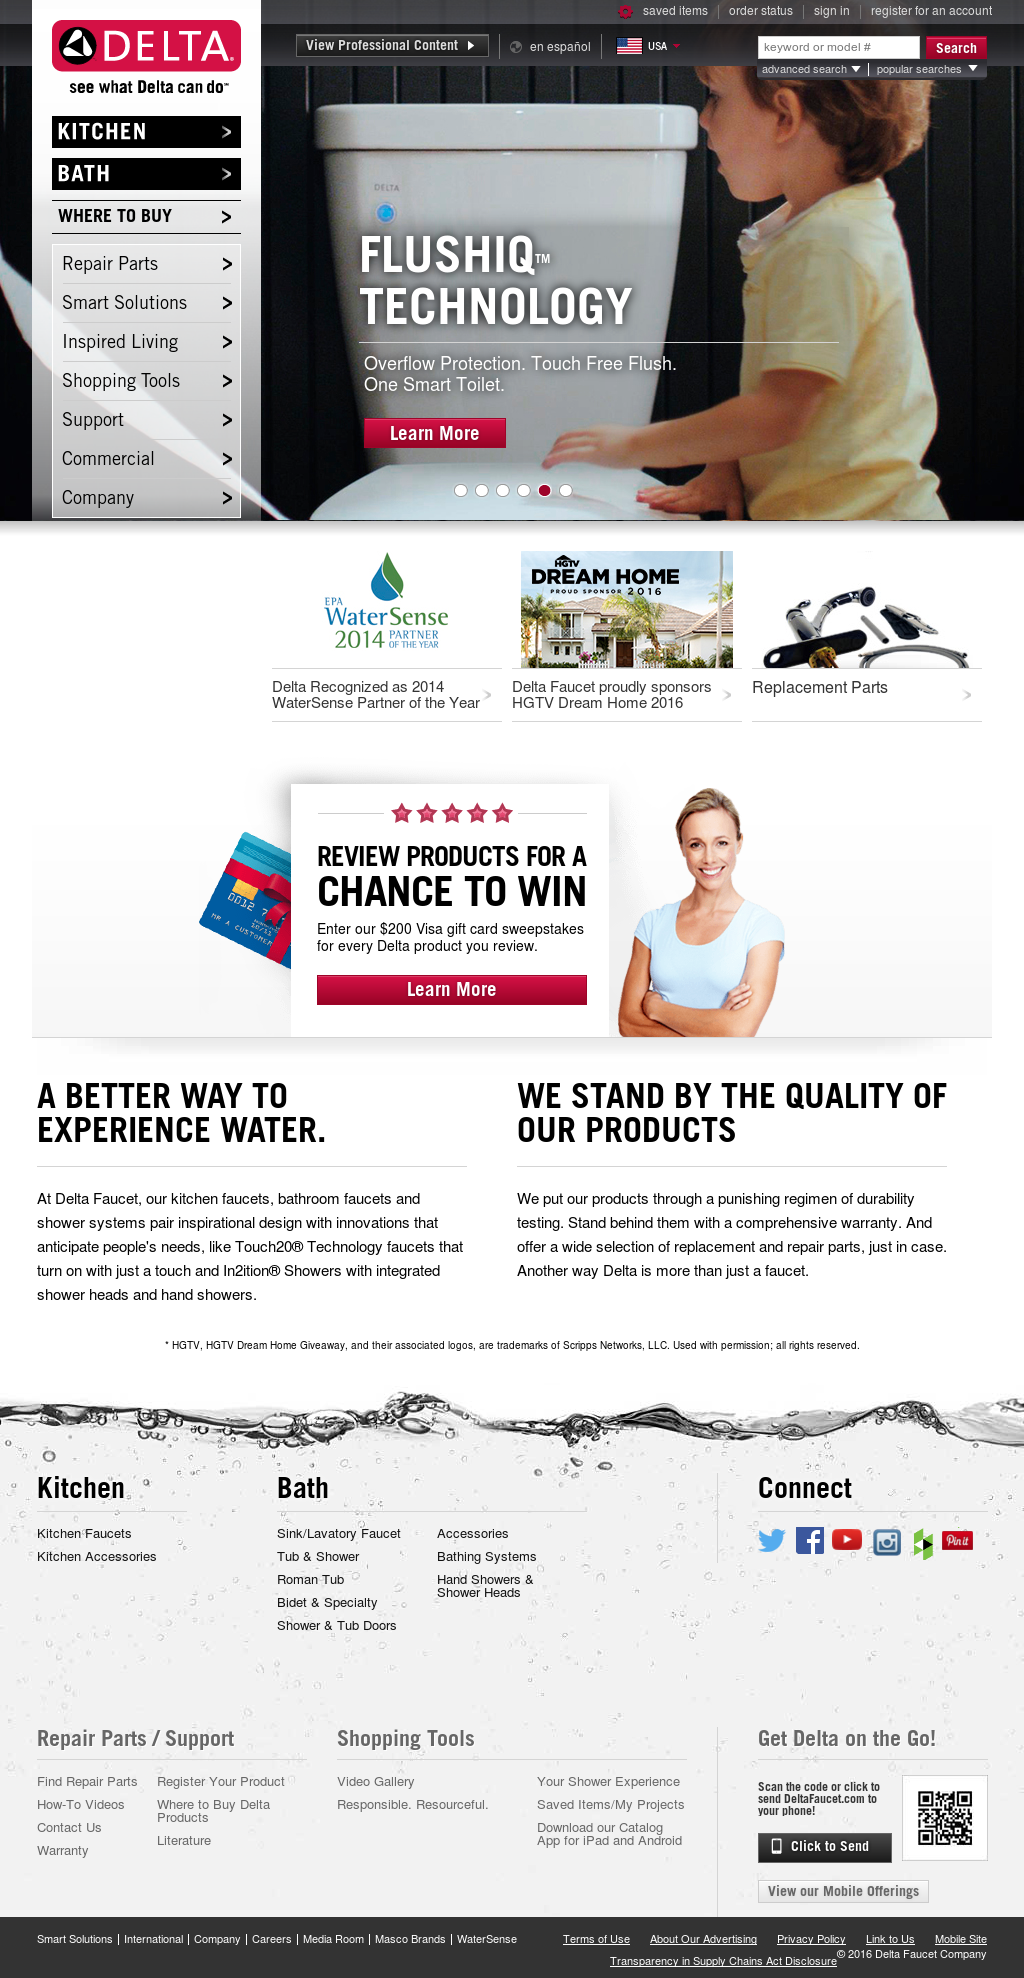 Delta Faucet Competitors, Revenue and Employees - Owler Company Profile